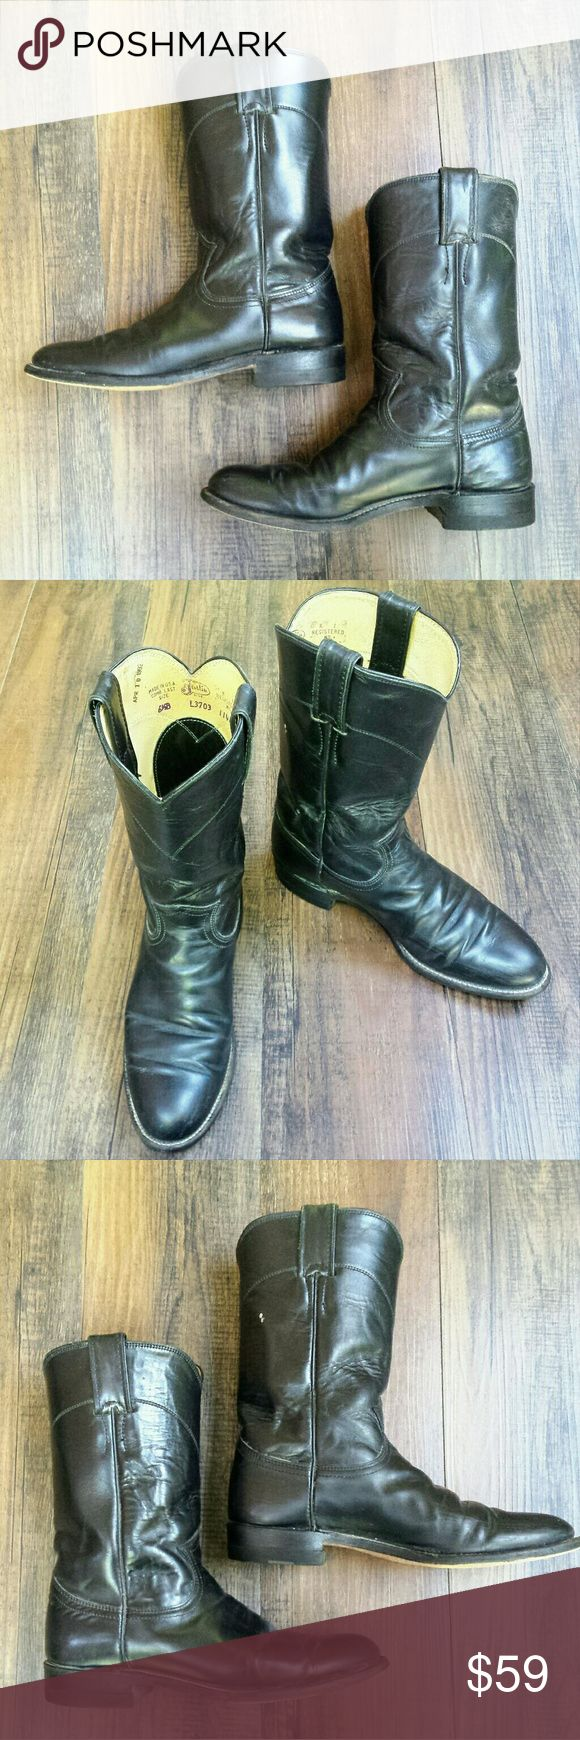 Justin Black Roper Boots Women's SZ 6 Black leather Ropers in good condition. Women's size 6.5 Justin Boots Shoes Heeled Boots